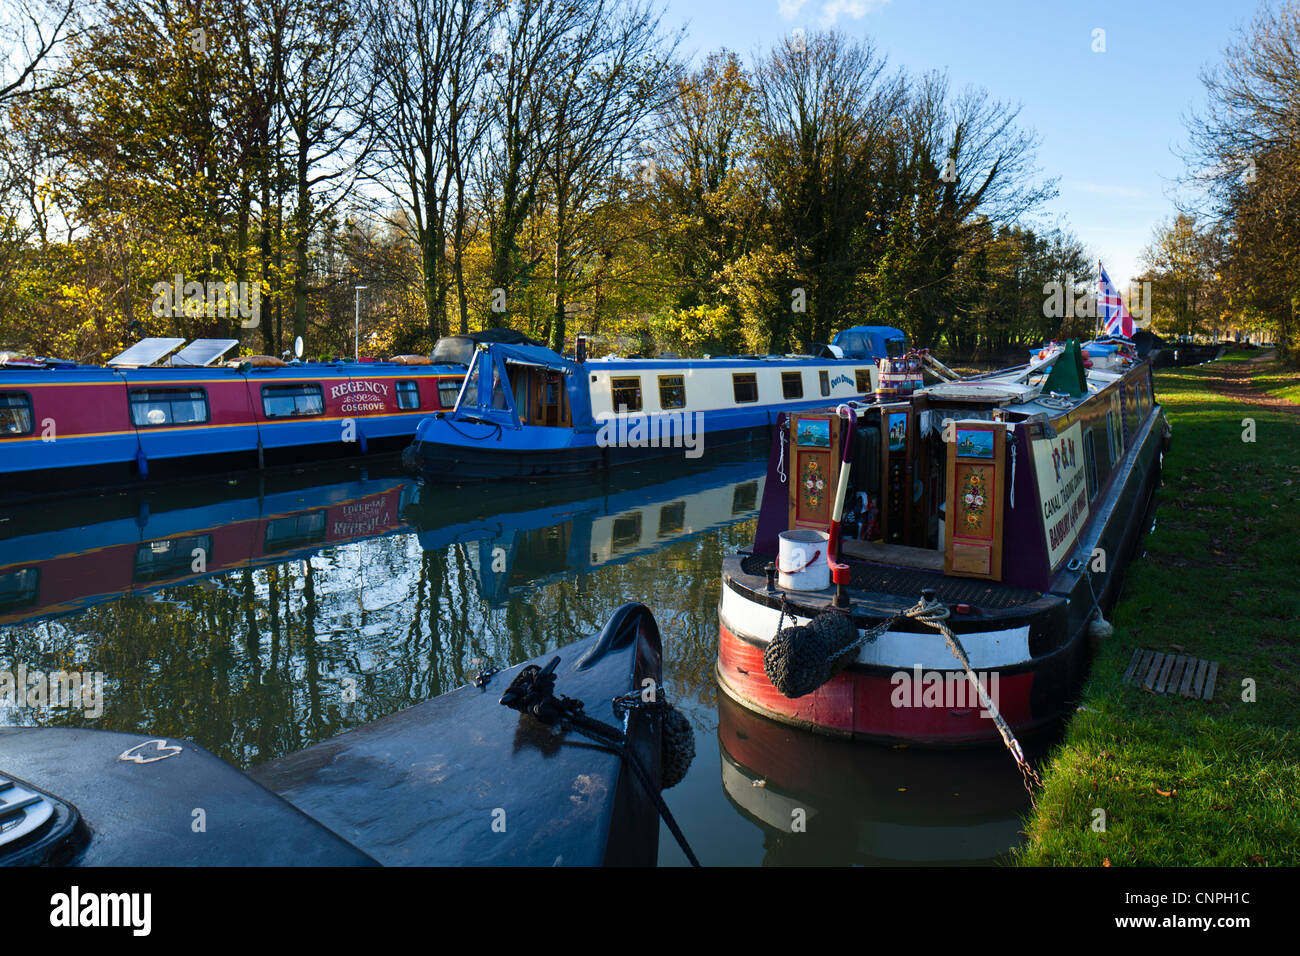 Canal boats on the Grand Union Canal near to Milton Keynes, UK. - Stock Image